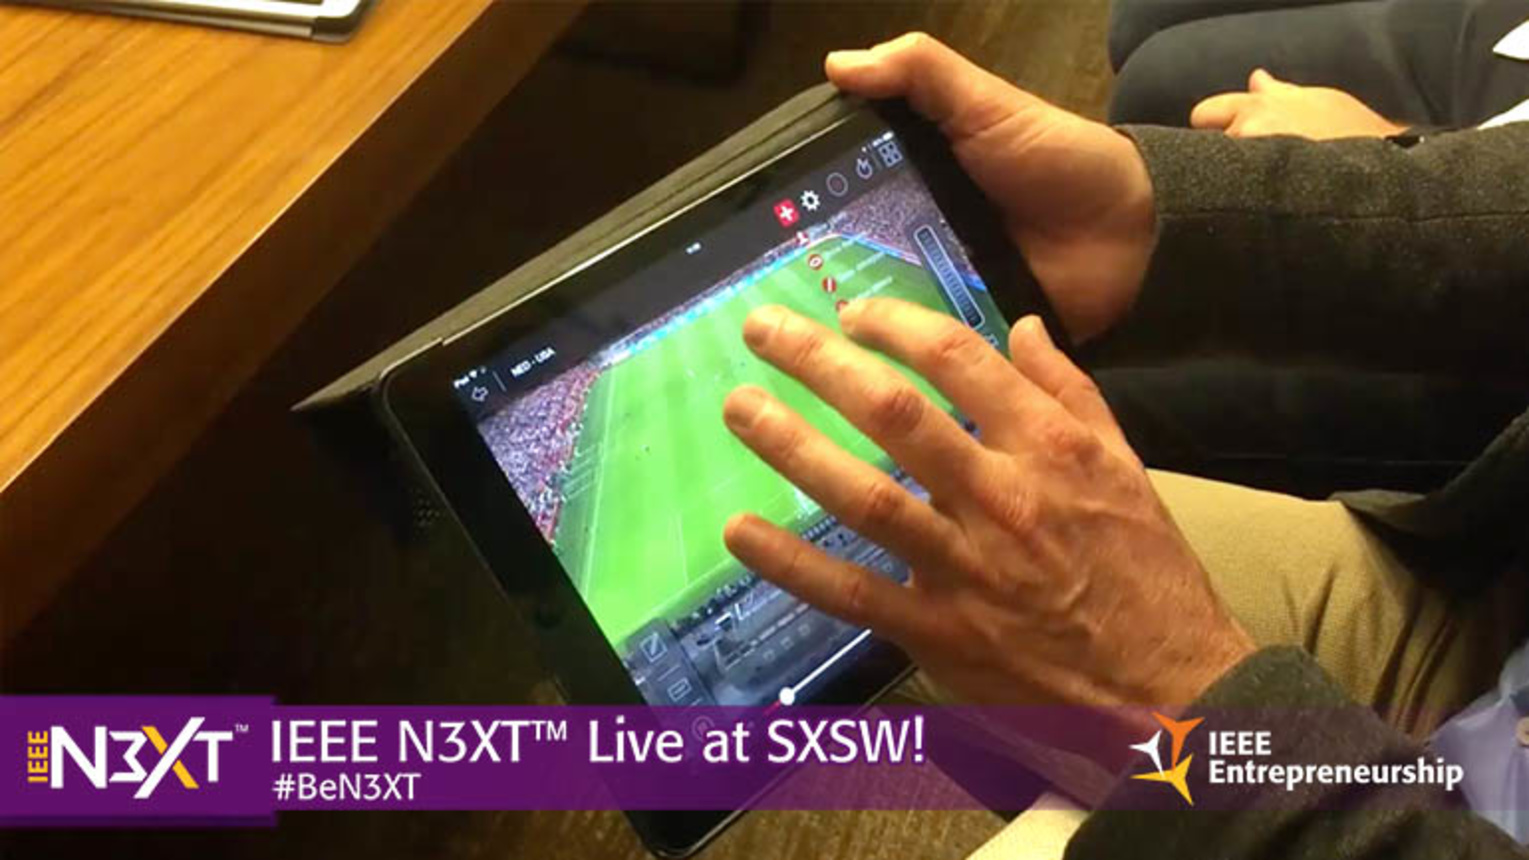 IEEE N3XT @ SXSW 2016: Dutch Media Innovators